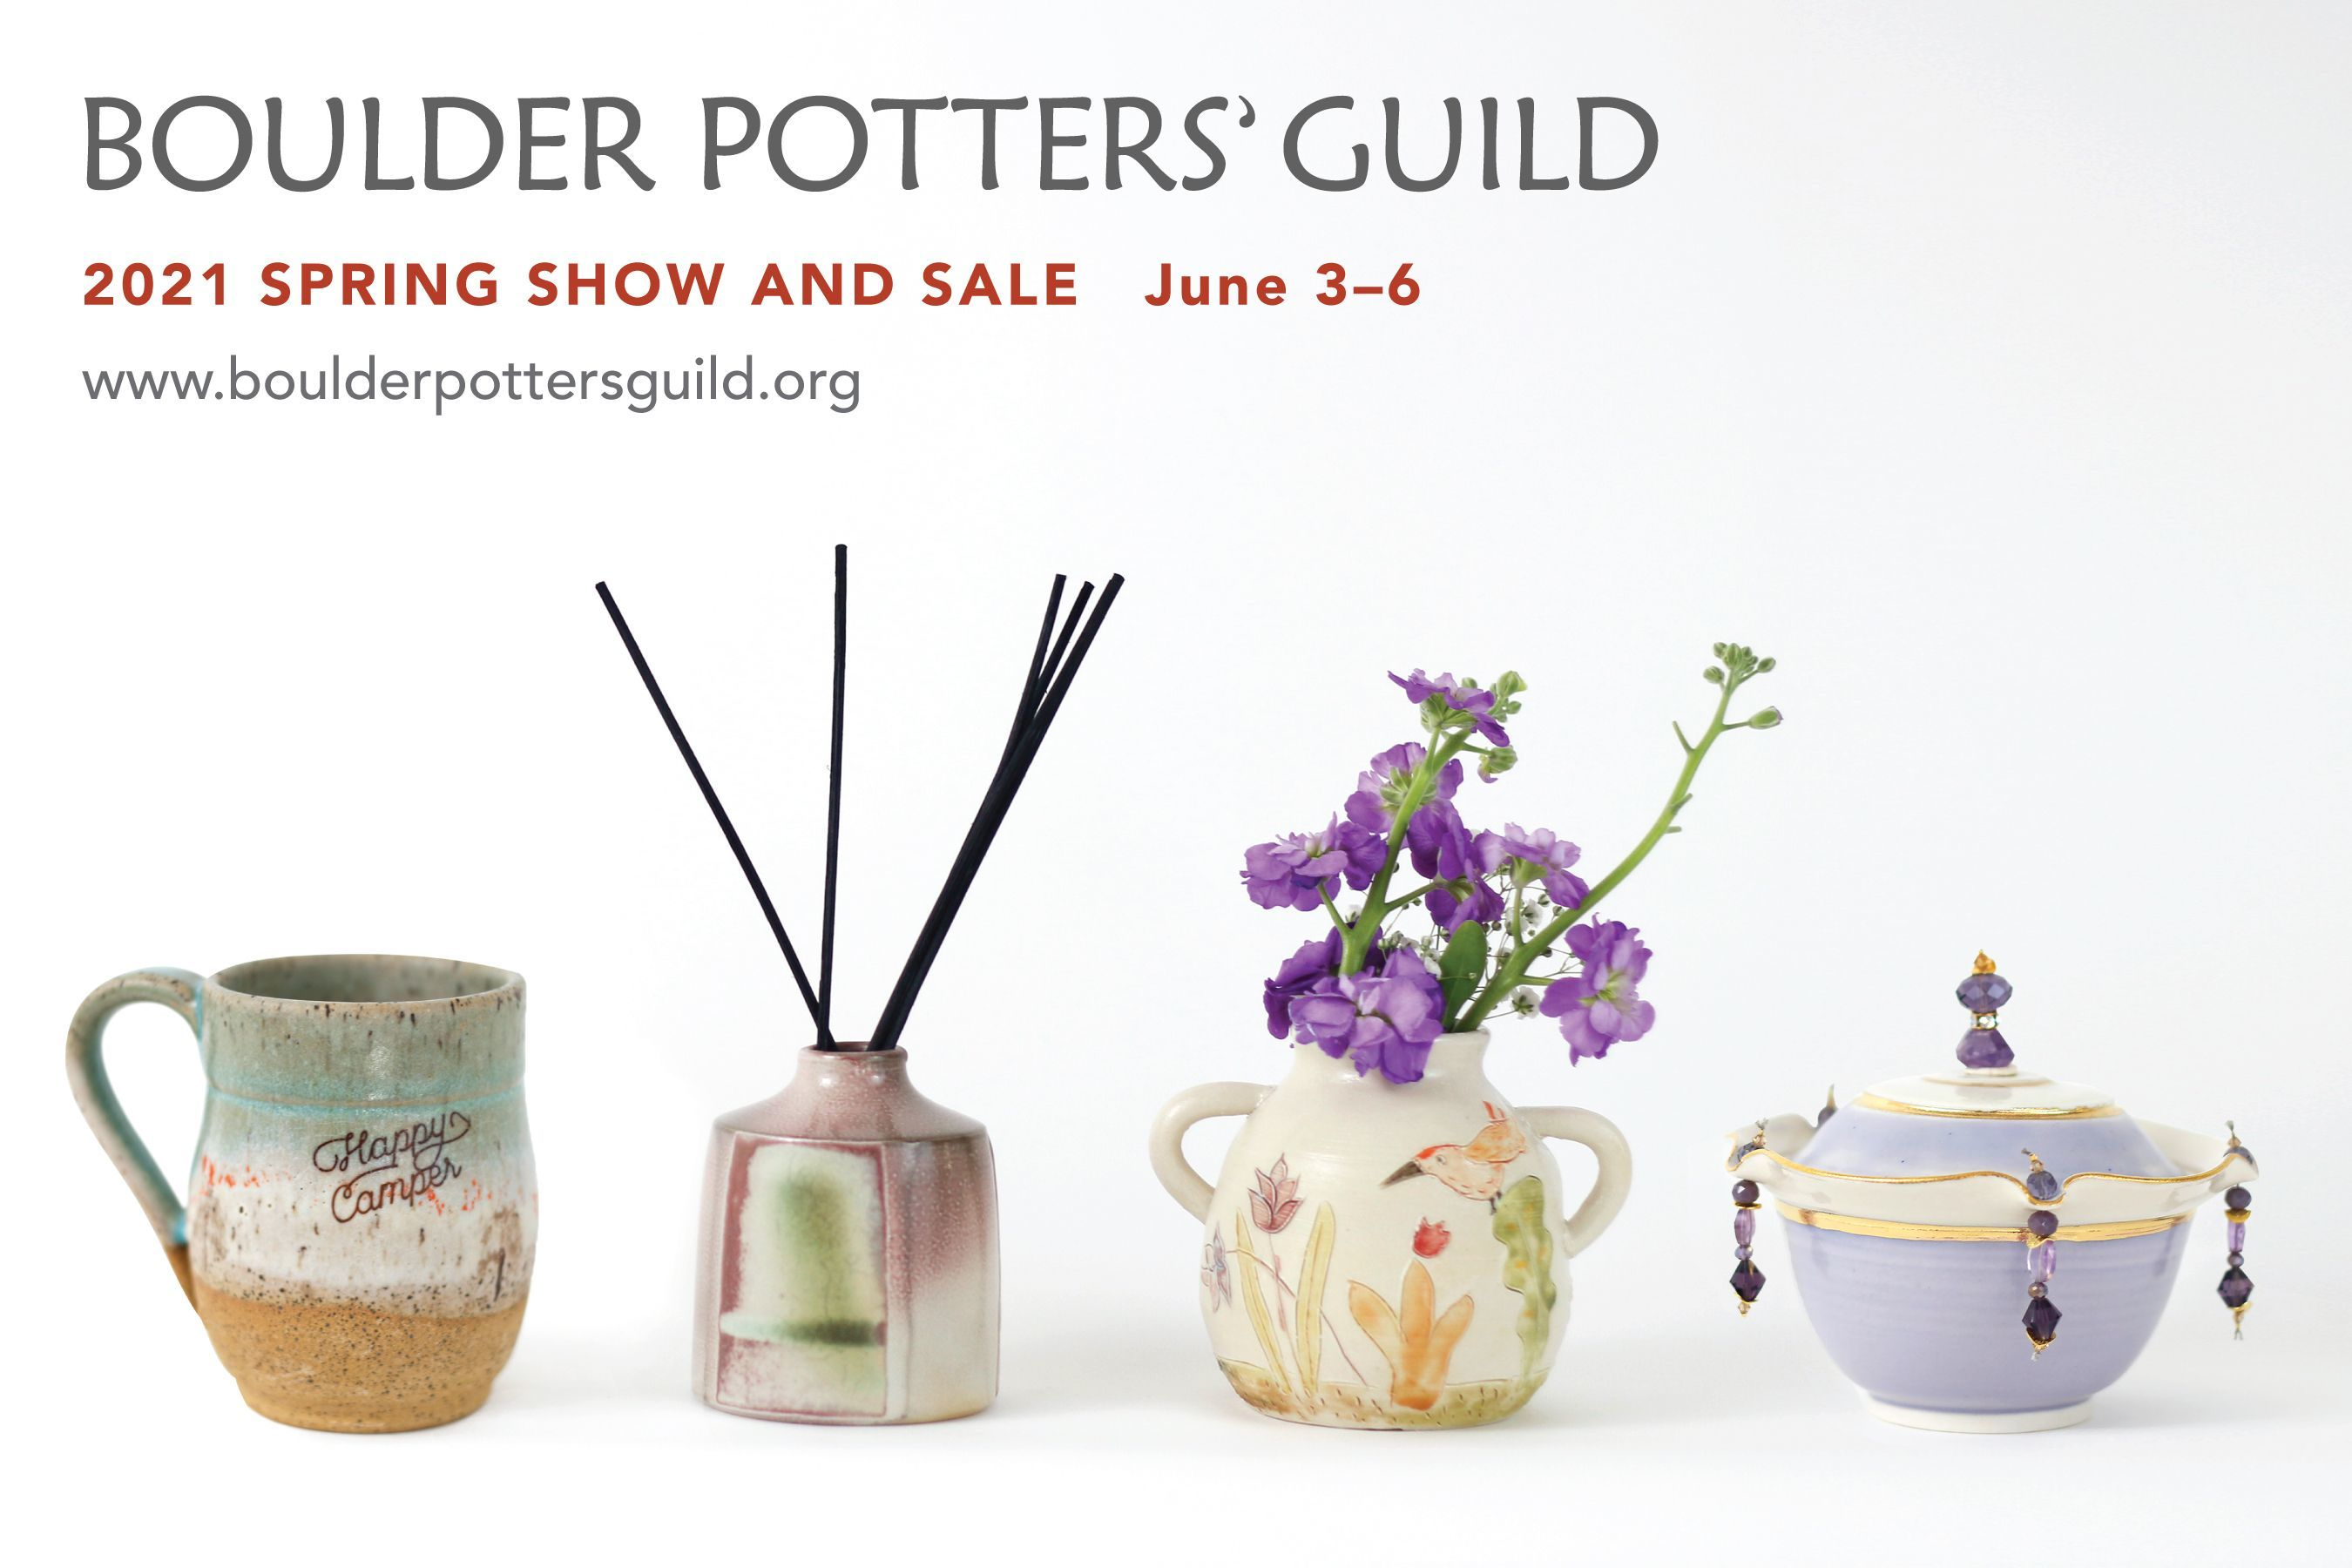 2021 Spring Show and Sale